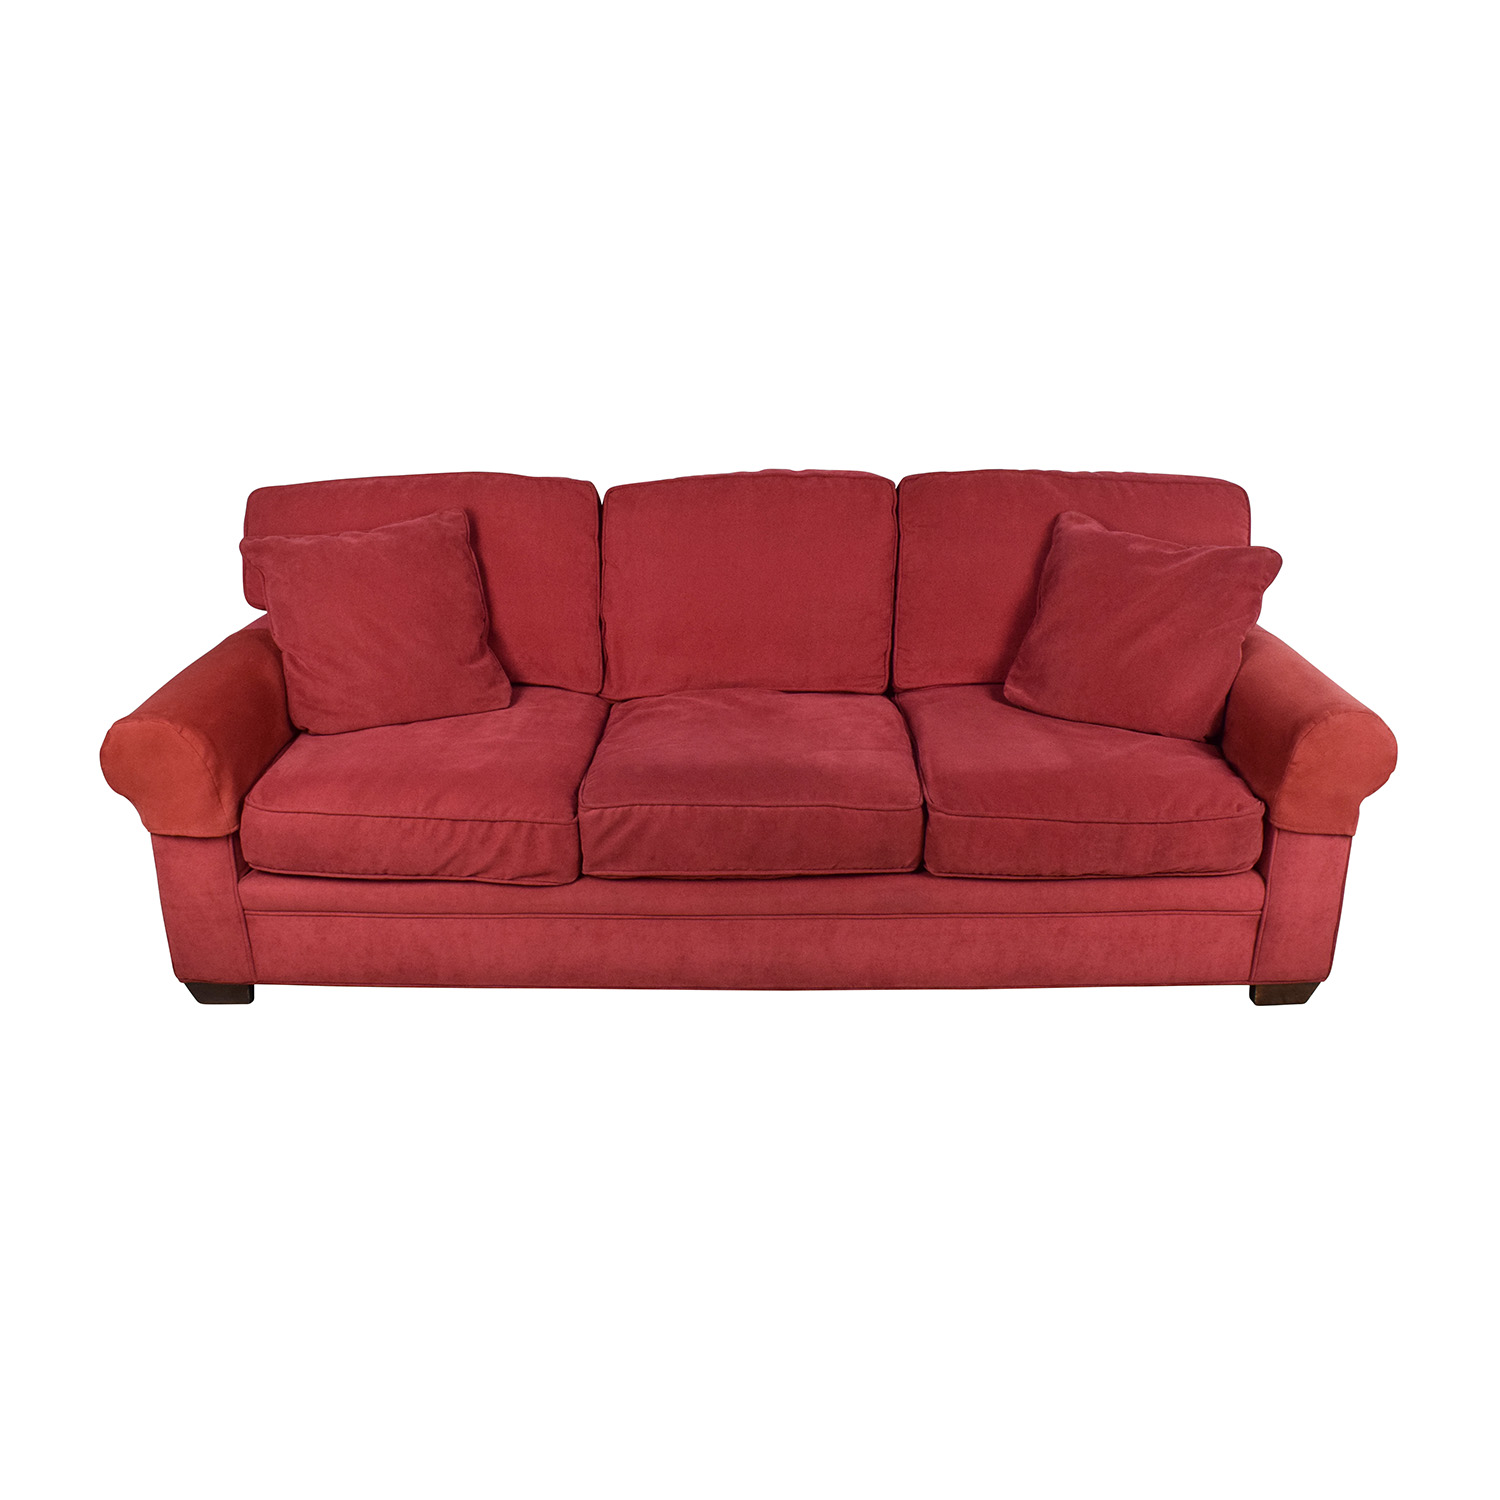 shop Crate and Barrel Crate & Barrel Microfiber Suede Burgundy Couch online